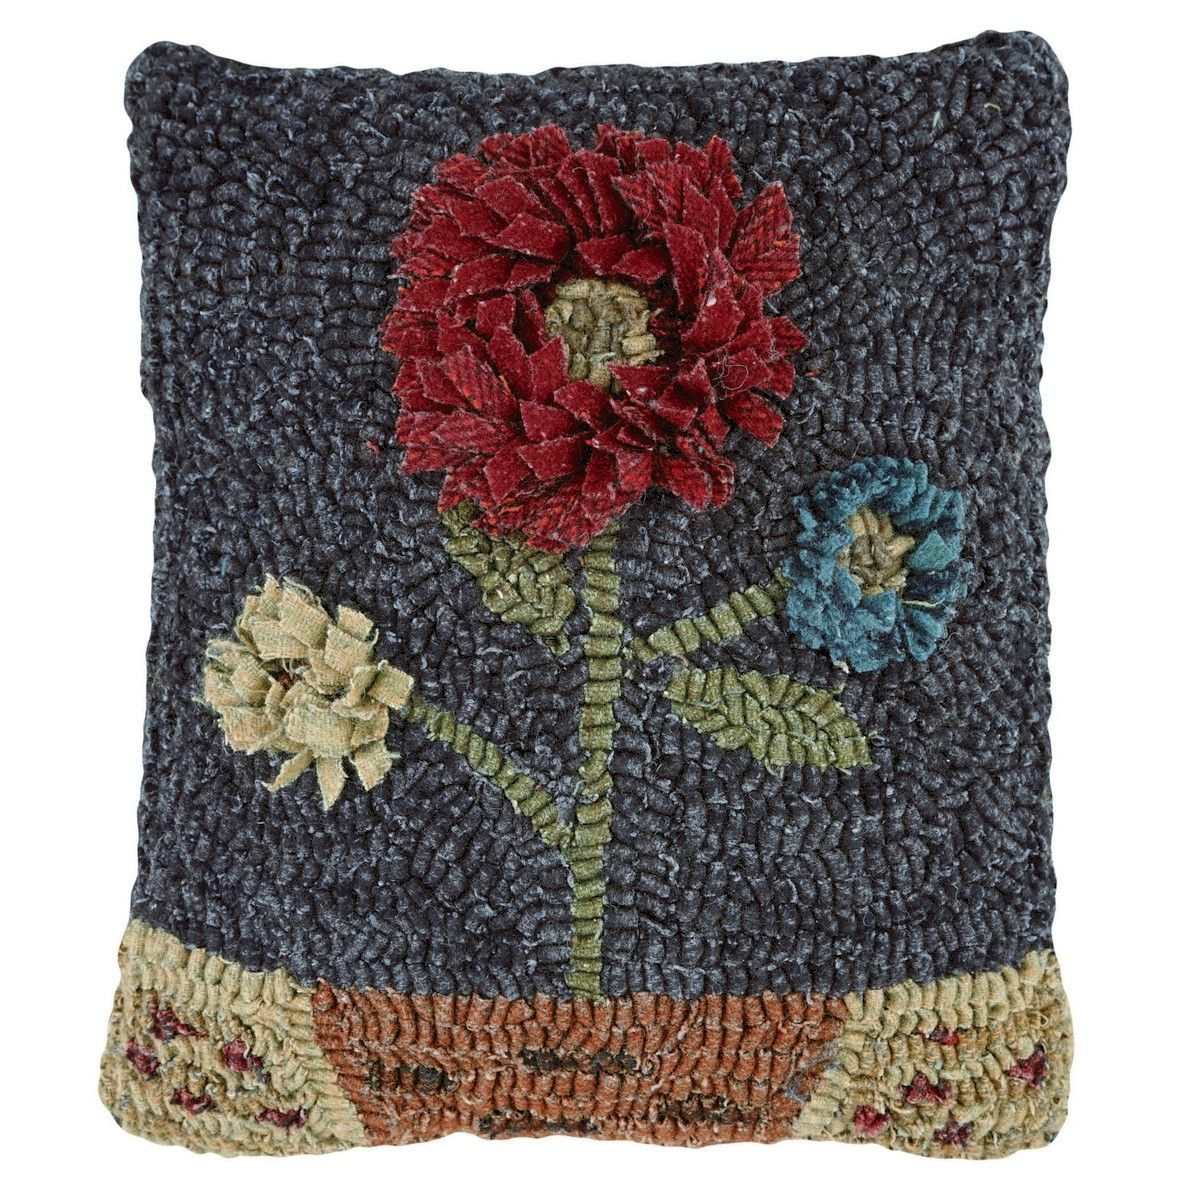 Features:  -Quality craftsmanship.  Product Type: -Throw pillow.  Color: -Multi-colored.  Style: -Country/Cottage.  Shape: -Square.  Cover Material: -Wool.  Fill Material: -Polyester/Polyfill.  Theme: